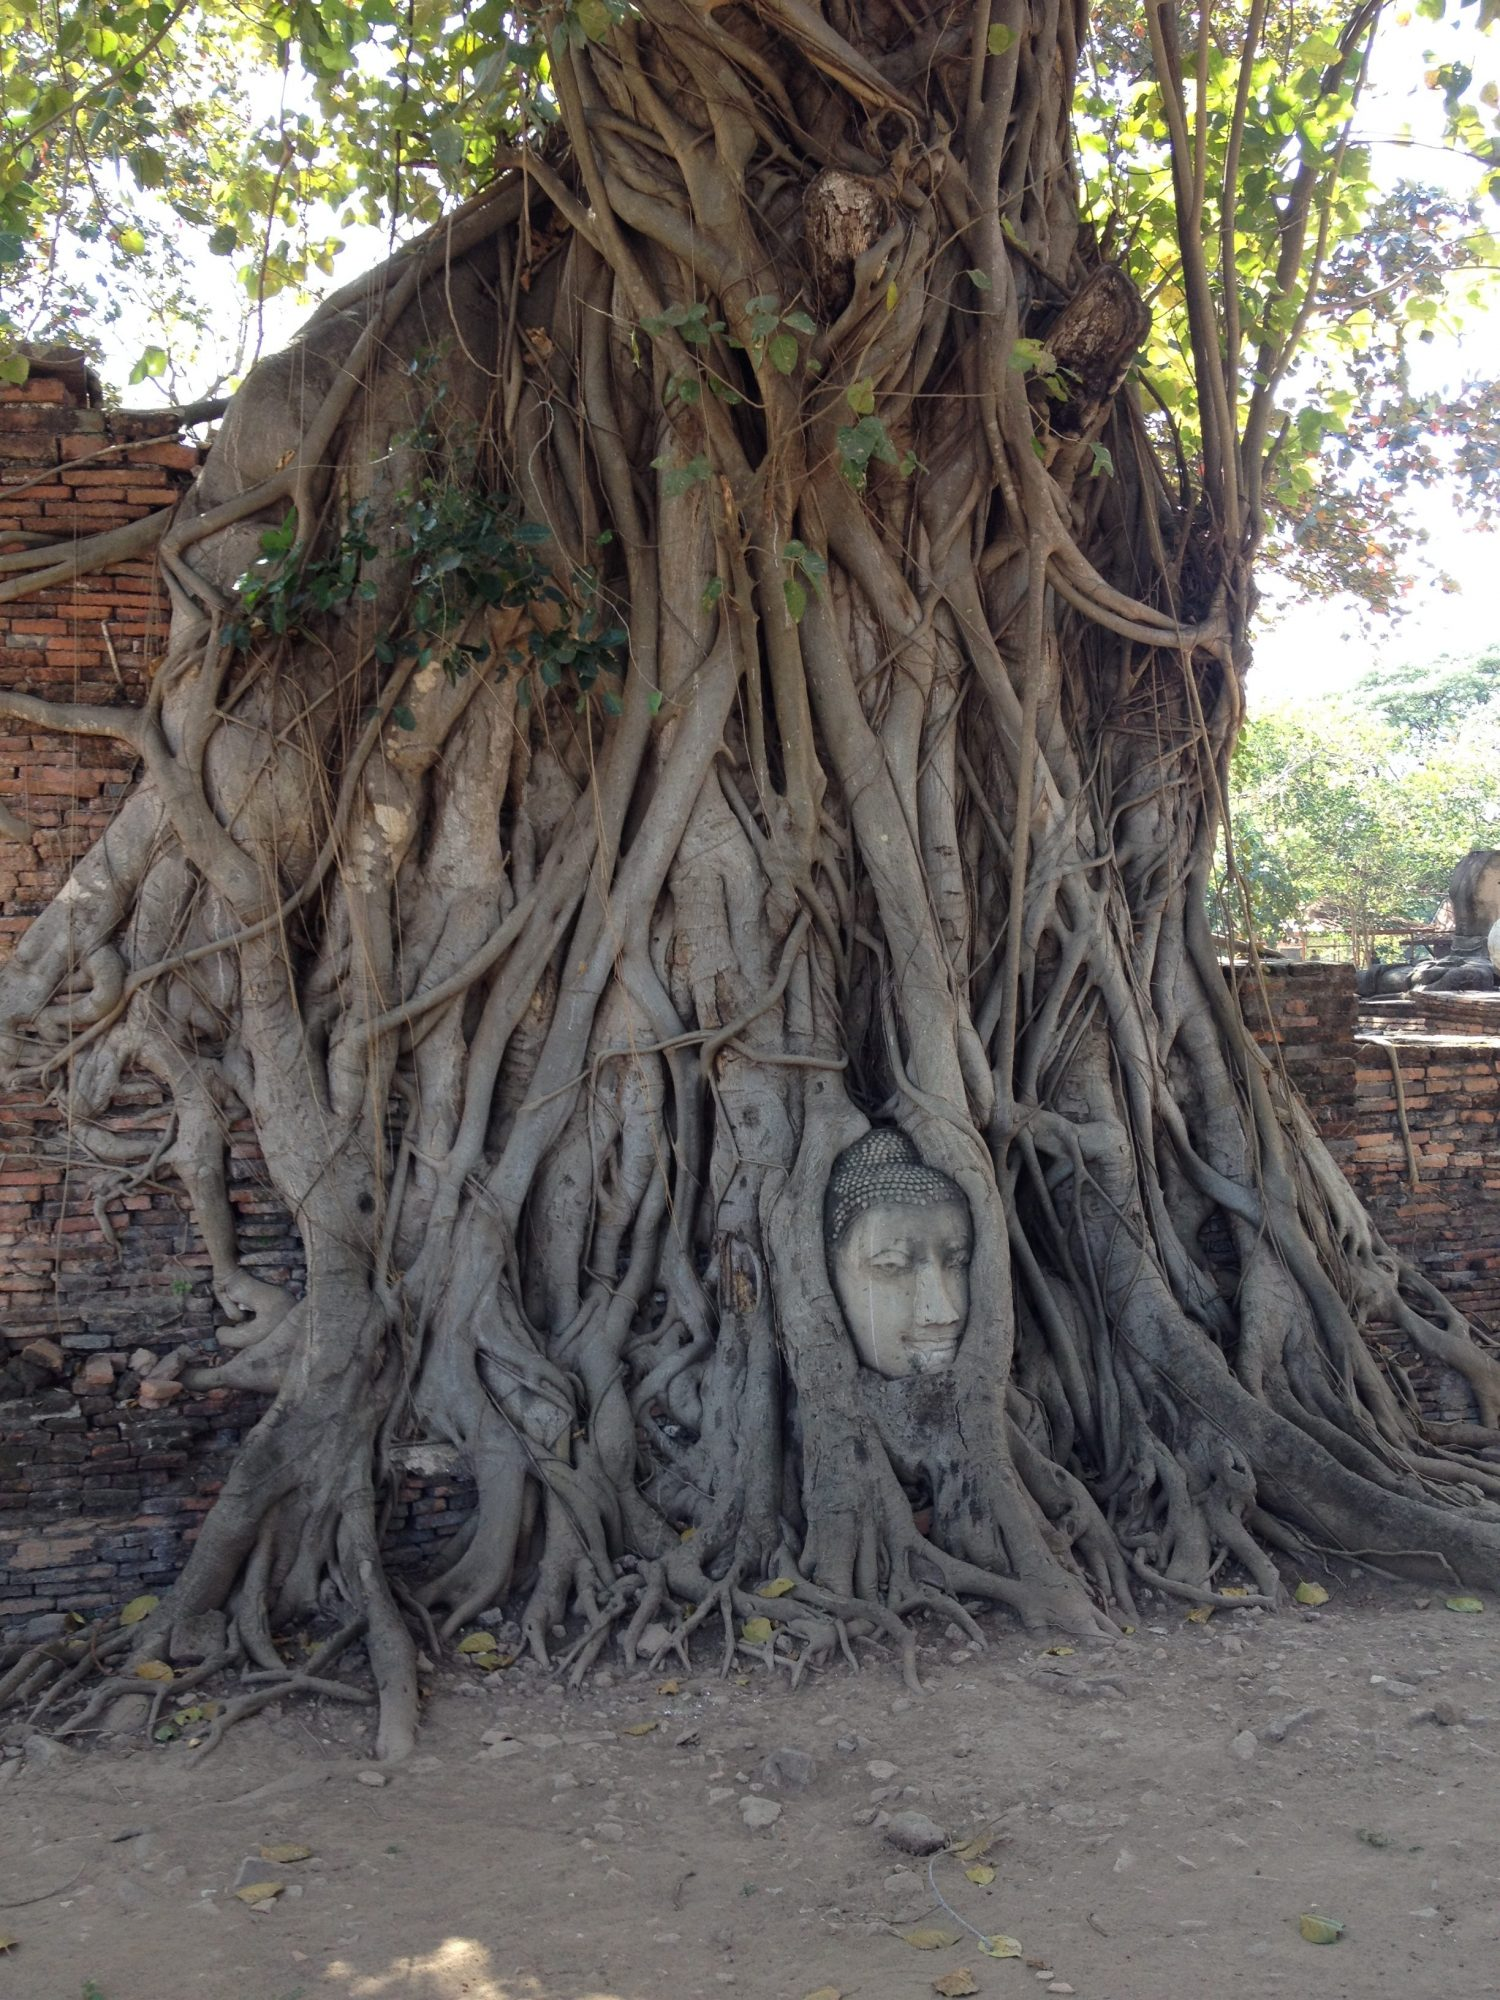 A Buddha head in an overgrown bodhi tree in Ayutthya, Thailand